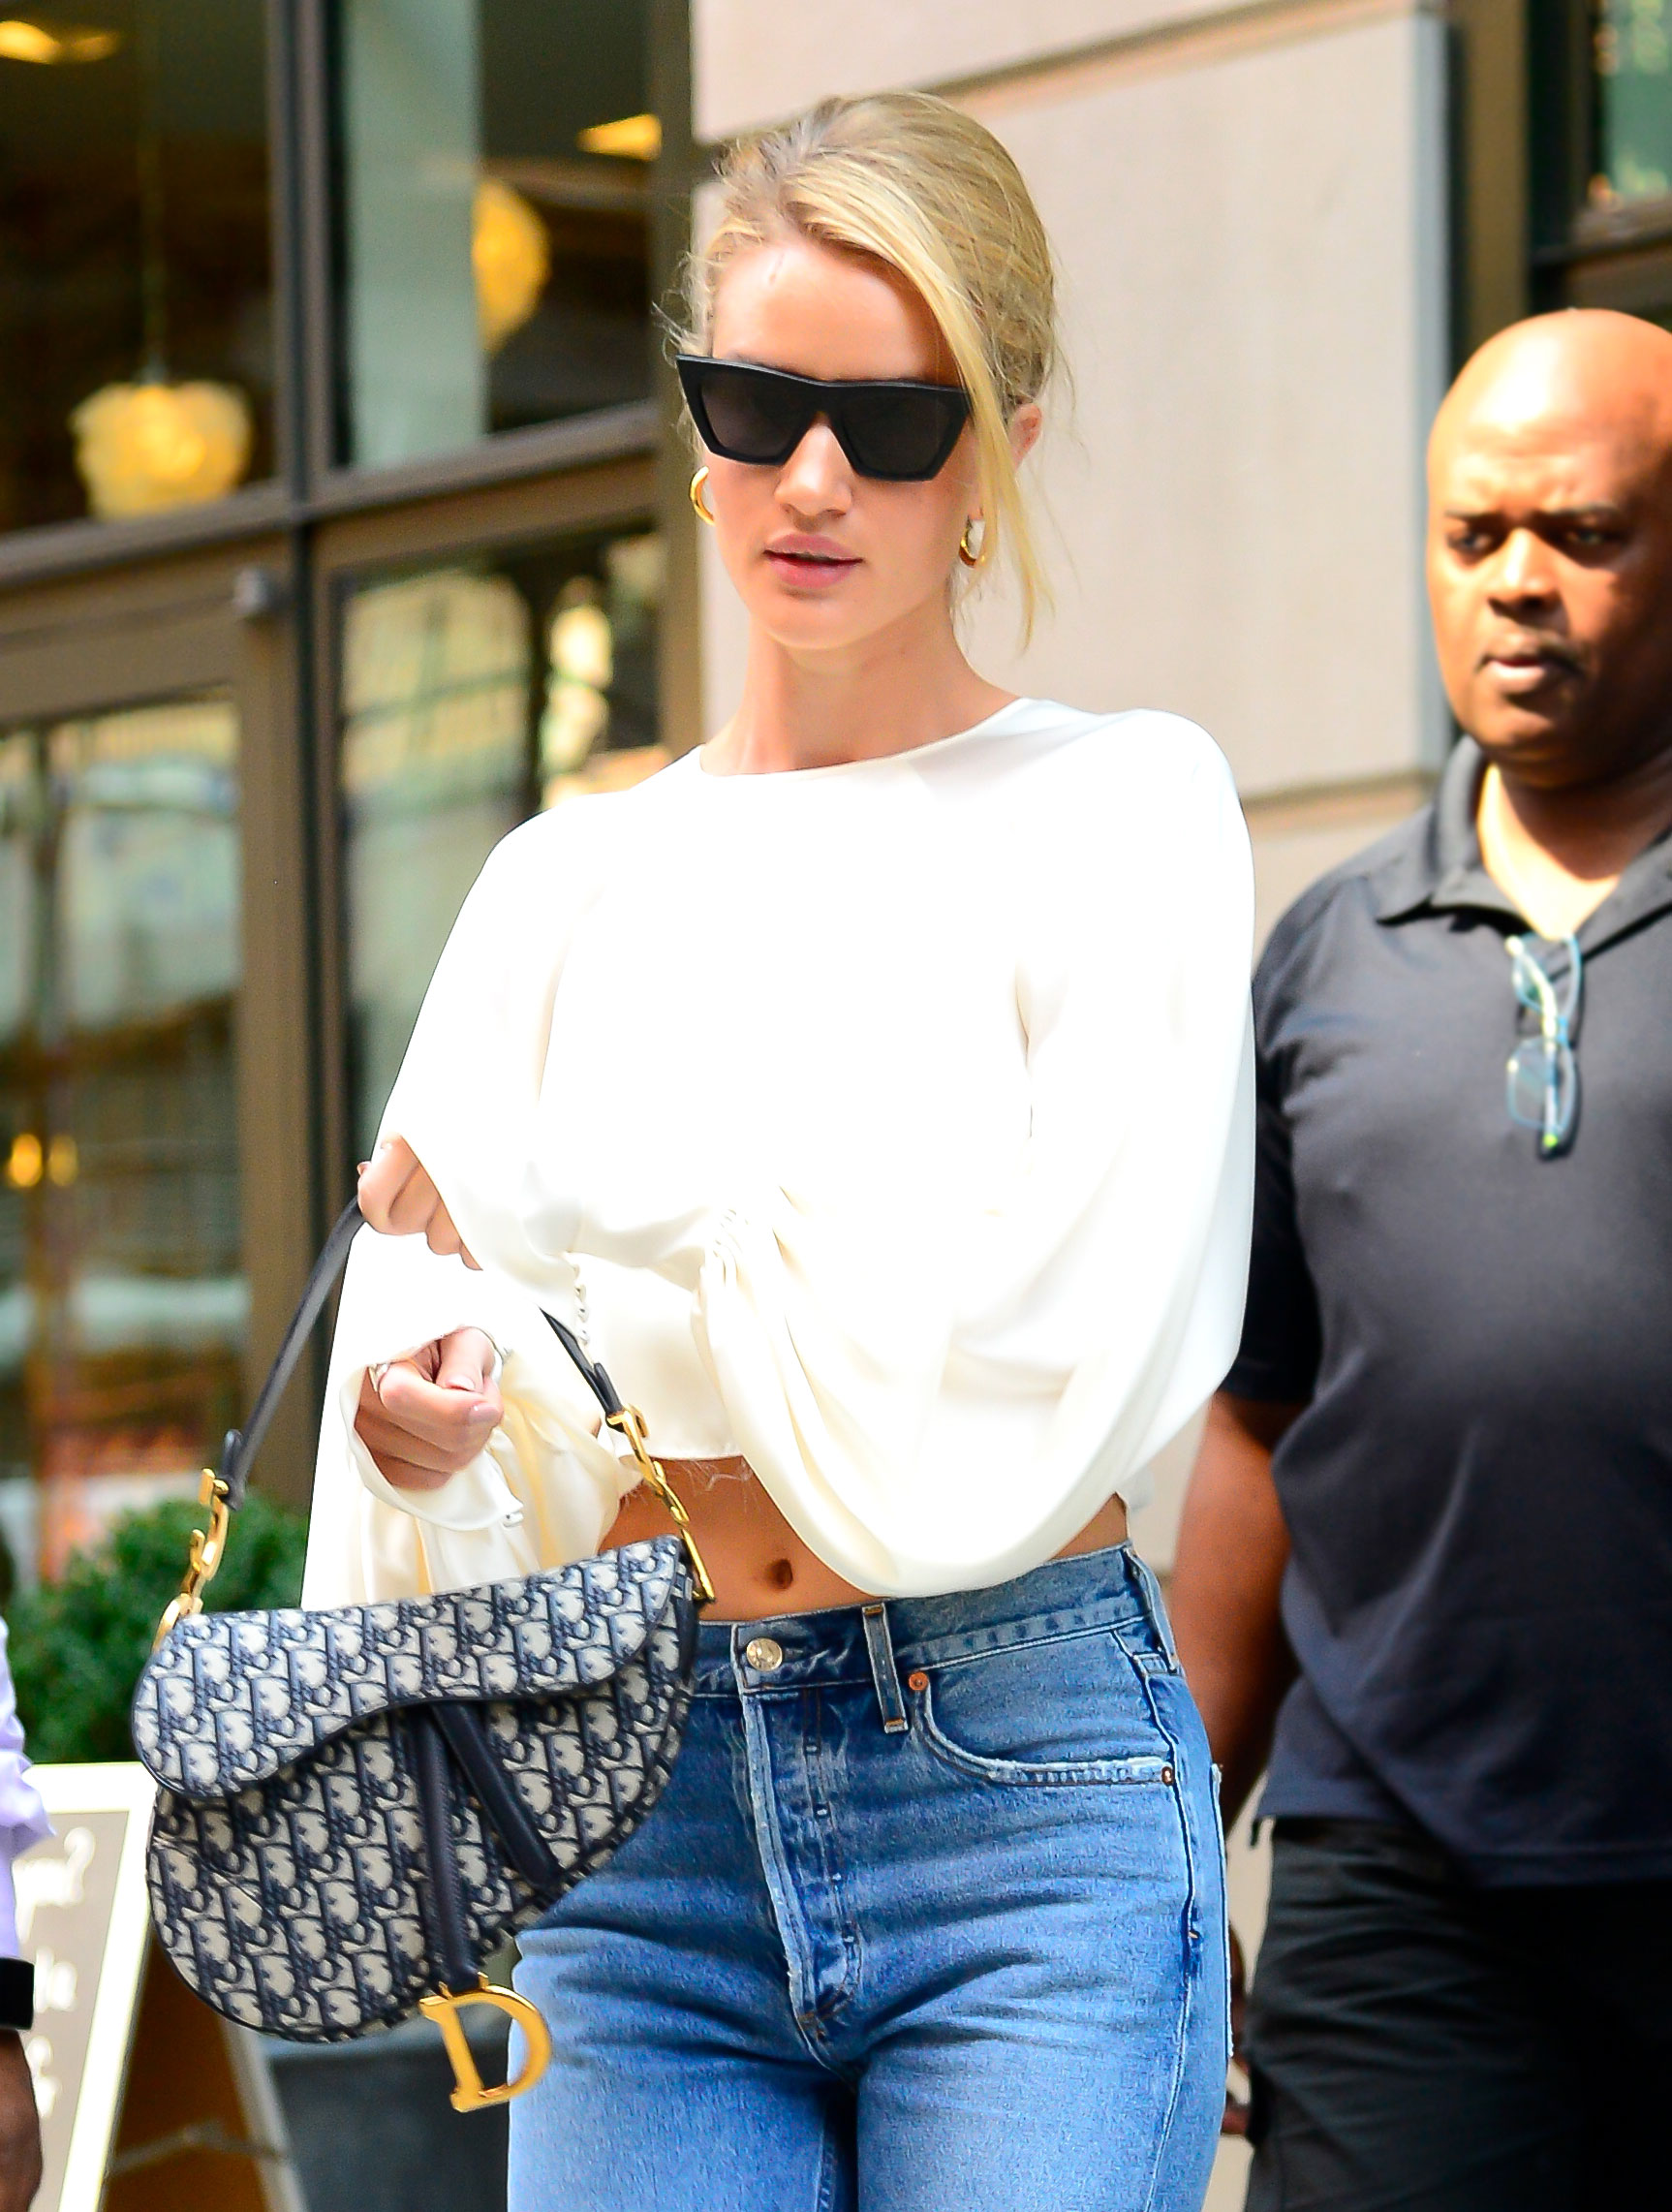 Rosie Huntington-Whiteley - The actress paired her canvas print style with the cool girls' uniform of faded jeans and a white blouse on August 15.